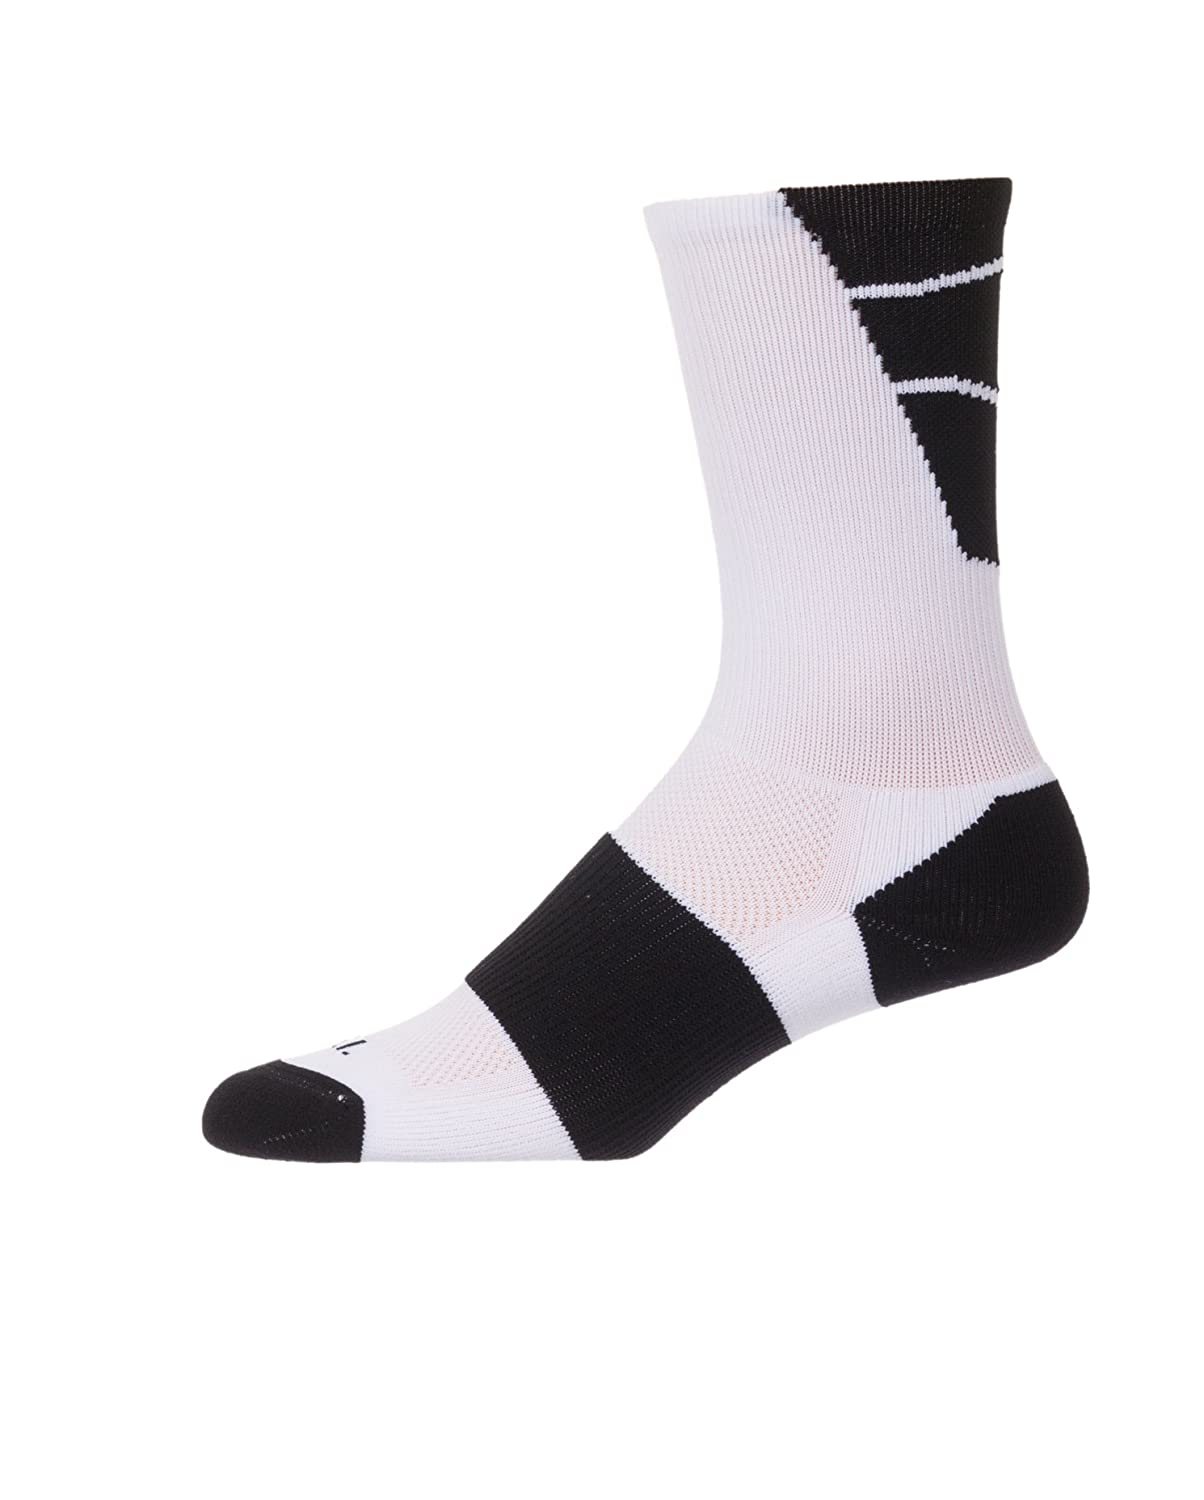 CSI Point Guard Performance Crew Socks Made In The USA White/Black 6MAN13023